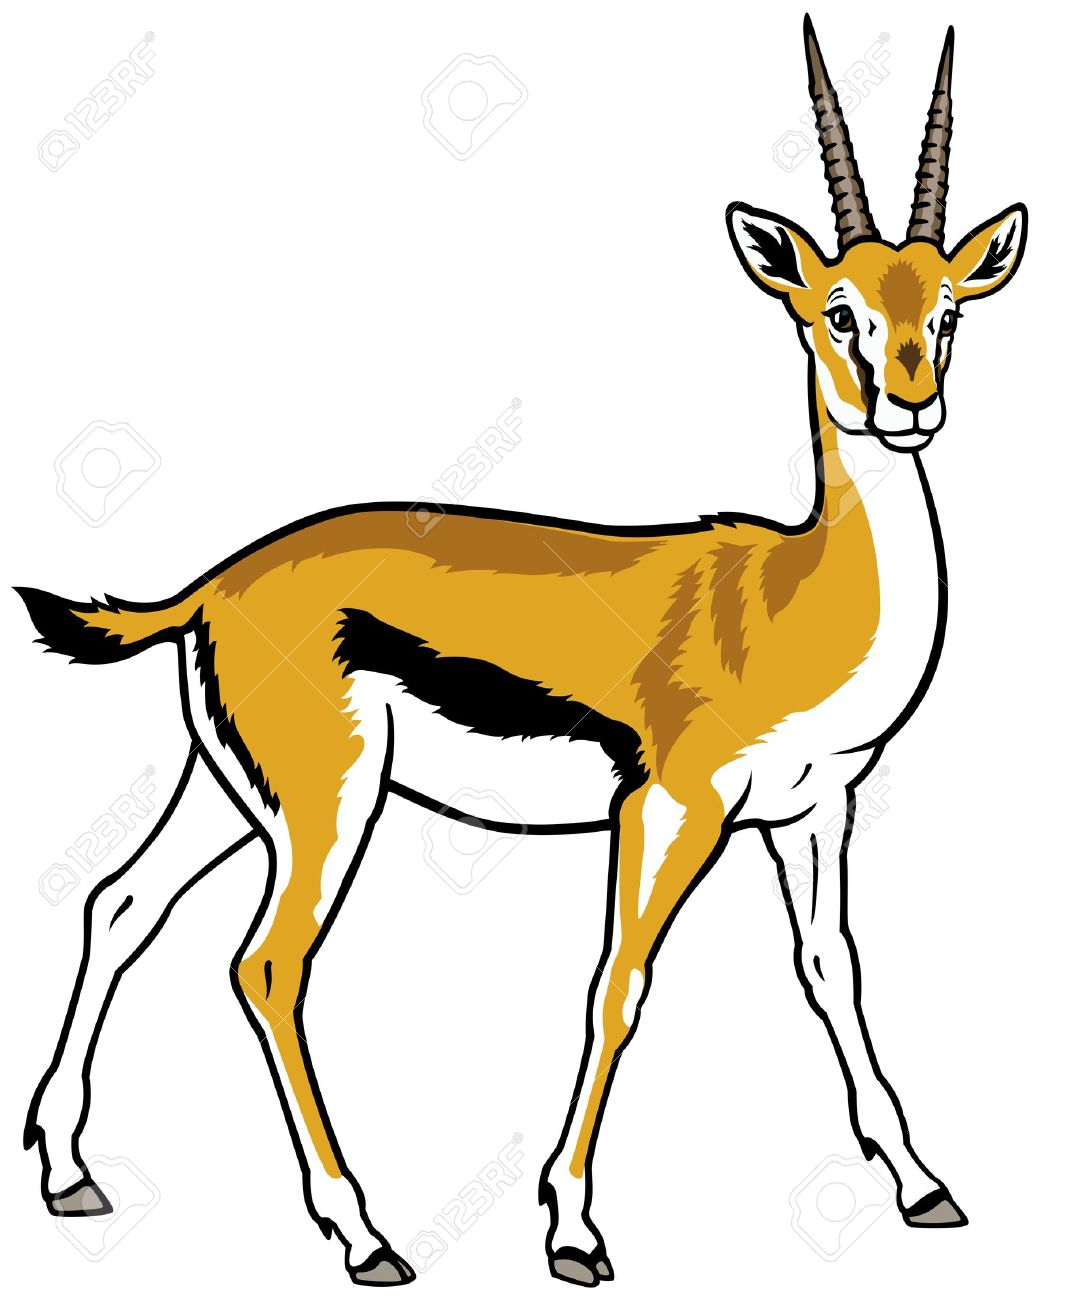 1 299 gazelle stock illustrations cliparts and royalty free gazelle rh 123rf com gazelle clipart free Zebra Clip Art